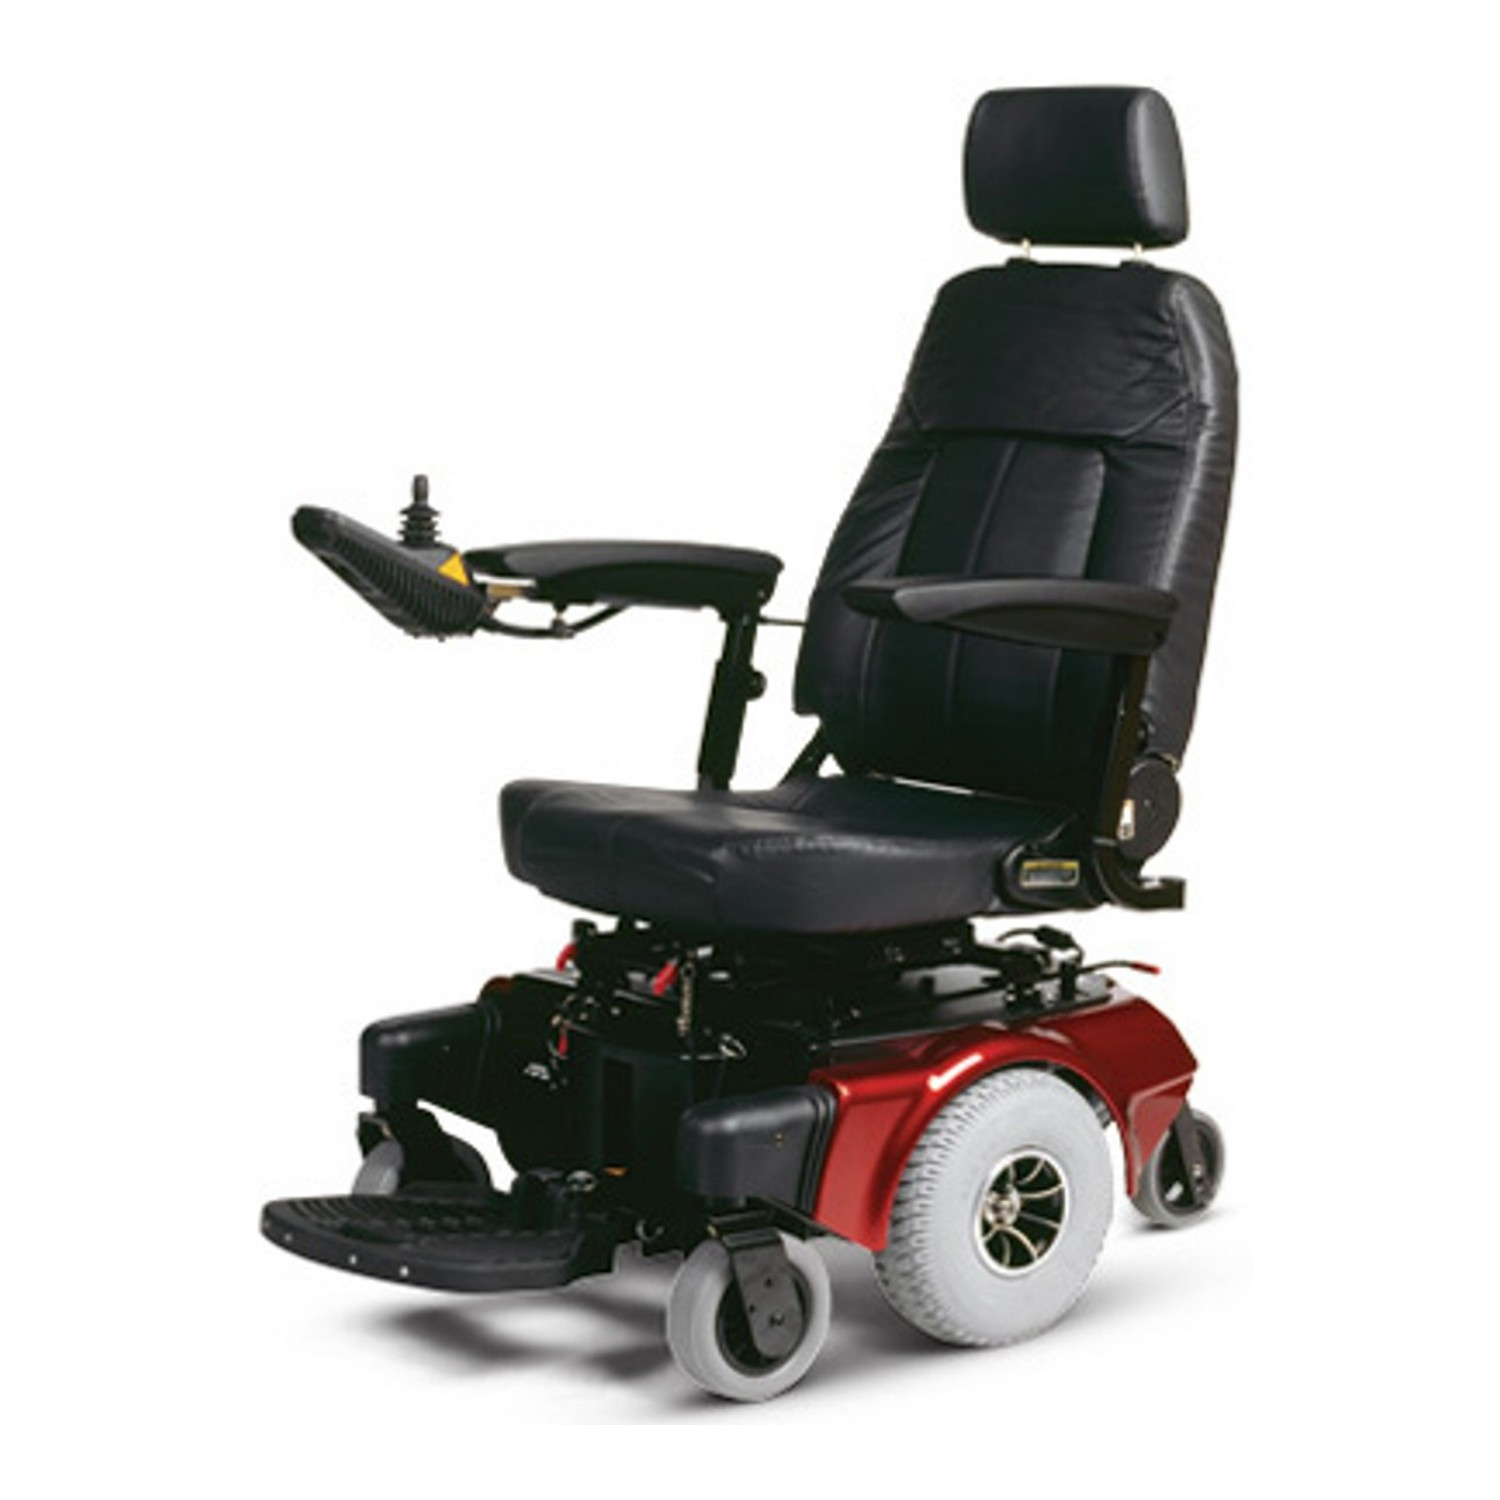 Power Chairs And Scooters Shoprider Power Wheelchairs Shoprider Navigator 424 M